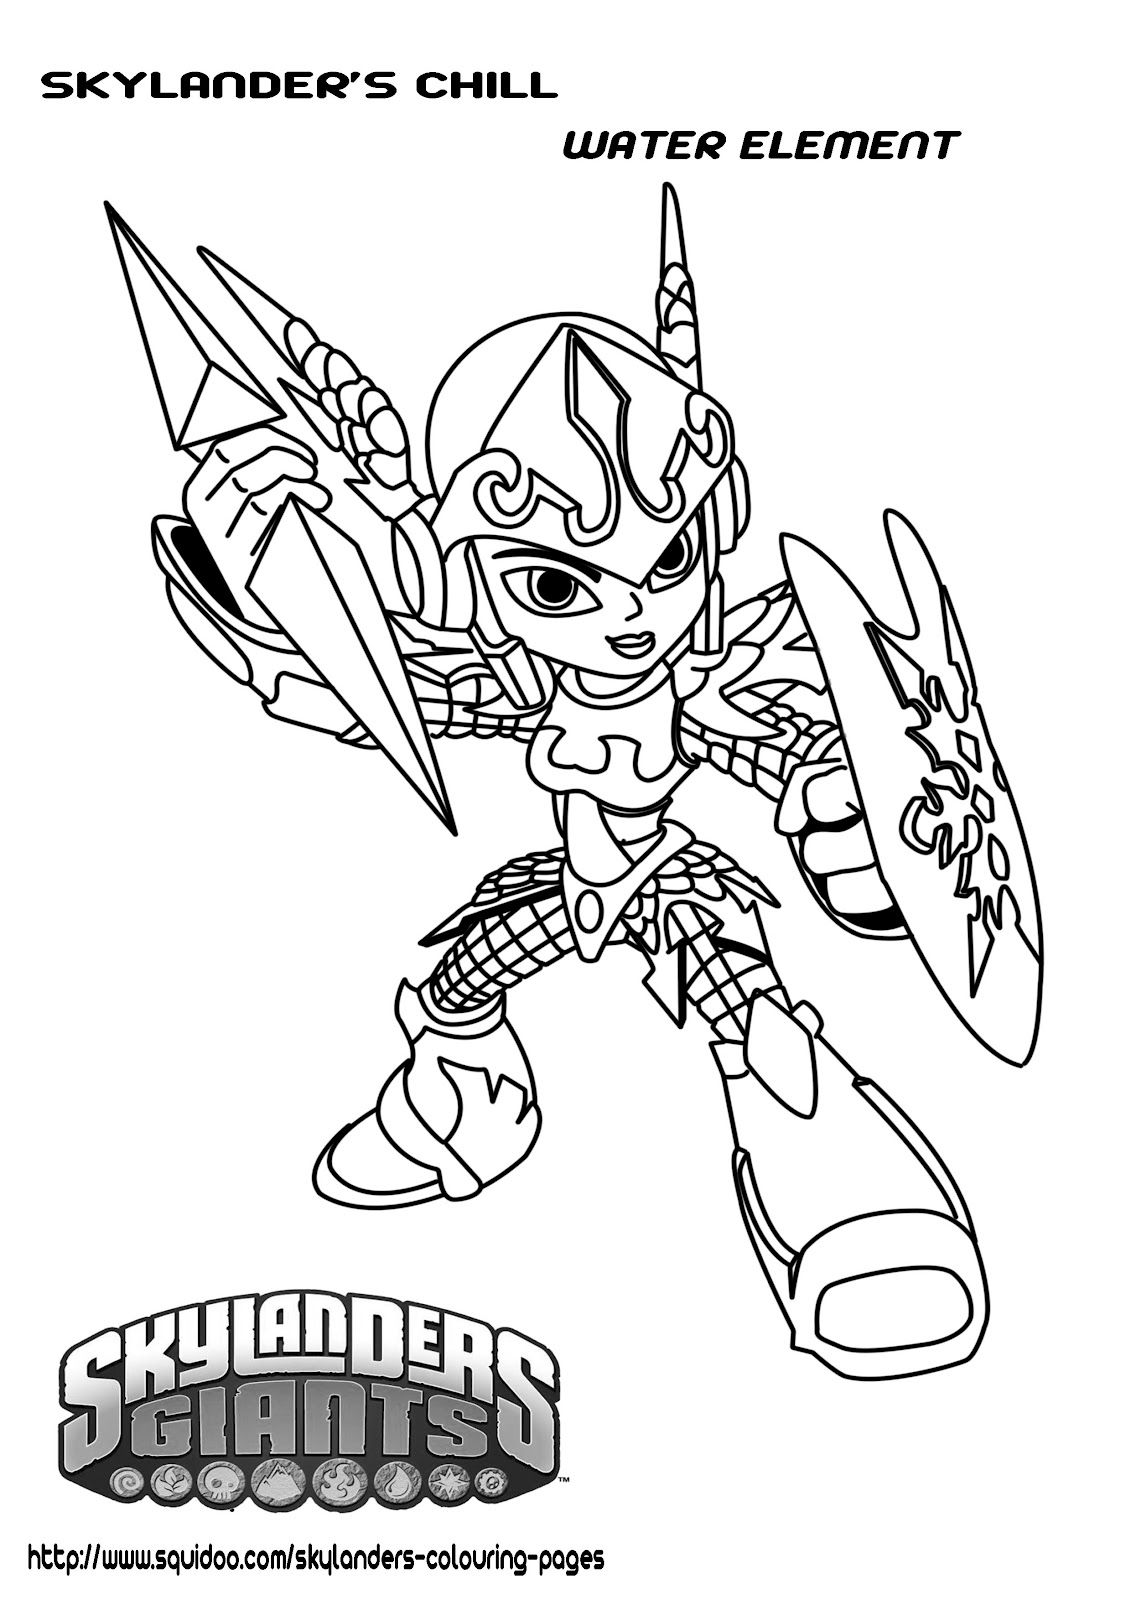 Skylanders coloring pages for boys ~ Printable Skylanders Coloring Pages | skylander birthday ...